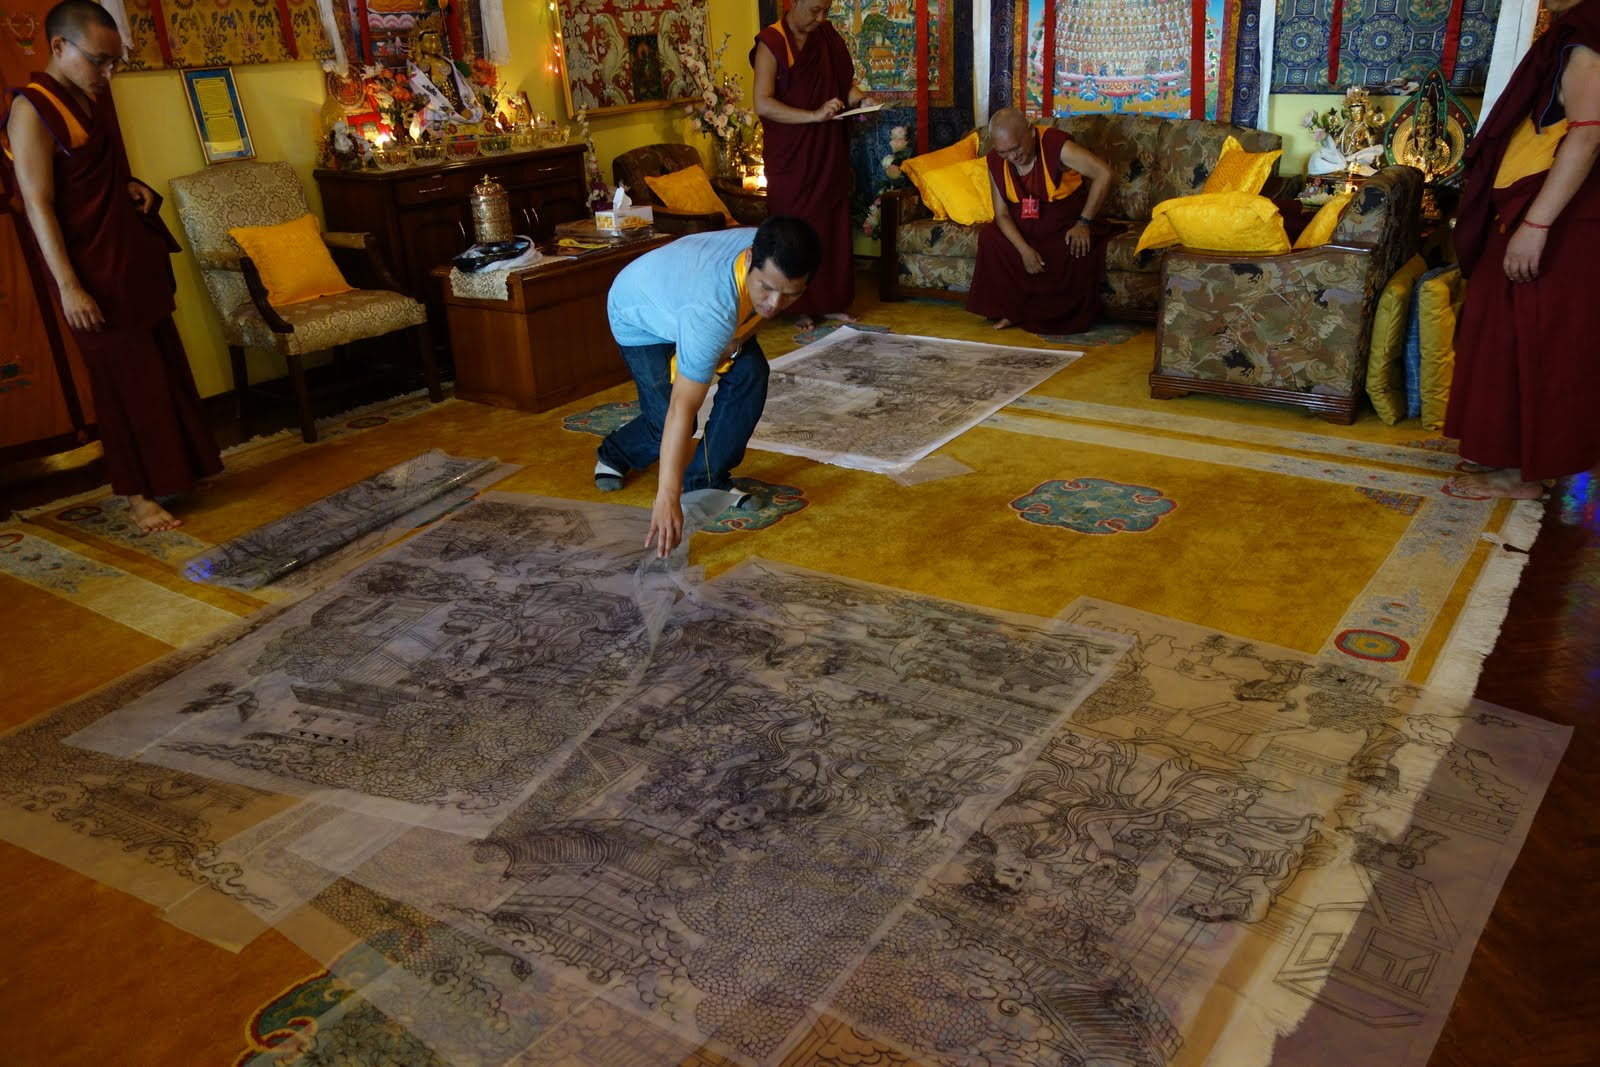 Rinpoche checking the art of the thangkas he is sponsoring: 21 Taras and The Eight Fearless Taras. There are 29 thangkas in total. Kopan Monastery, Aug 10, 2013. Photo: Ven. Roger Kunsang